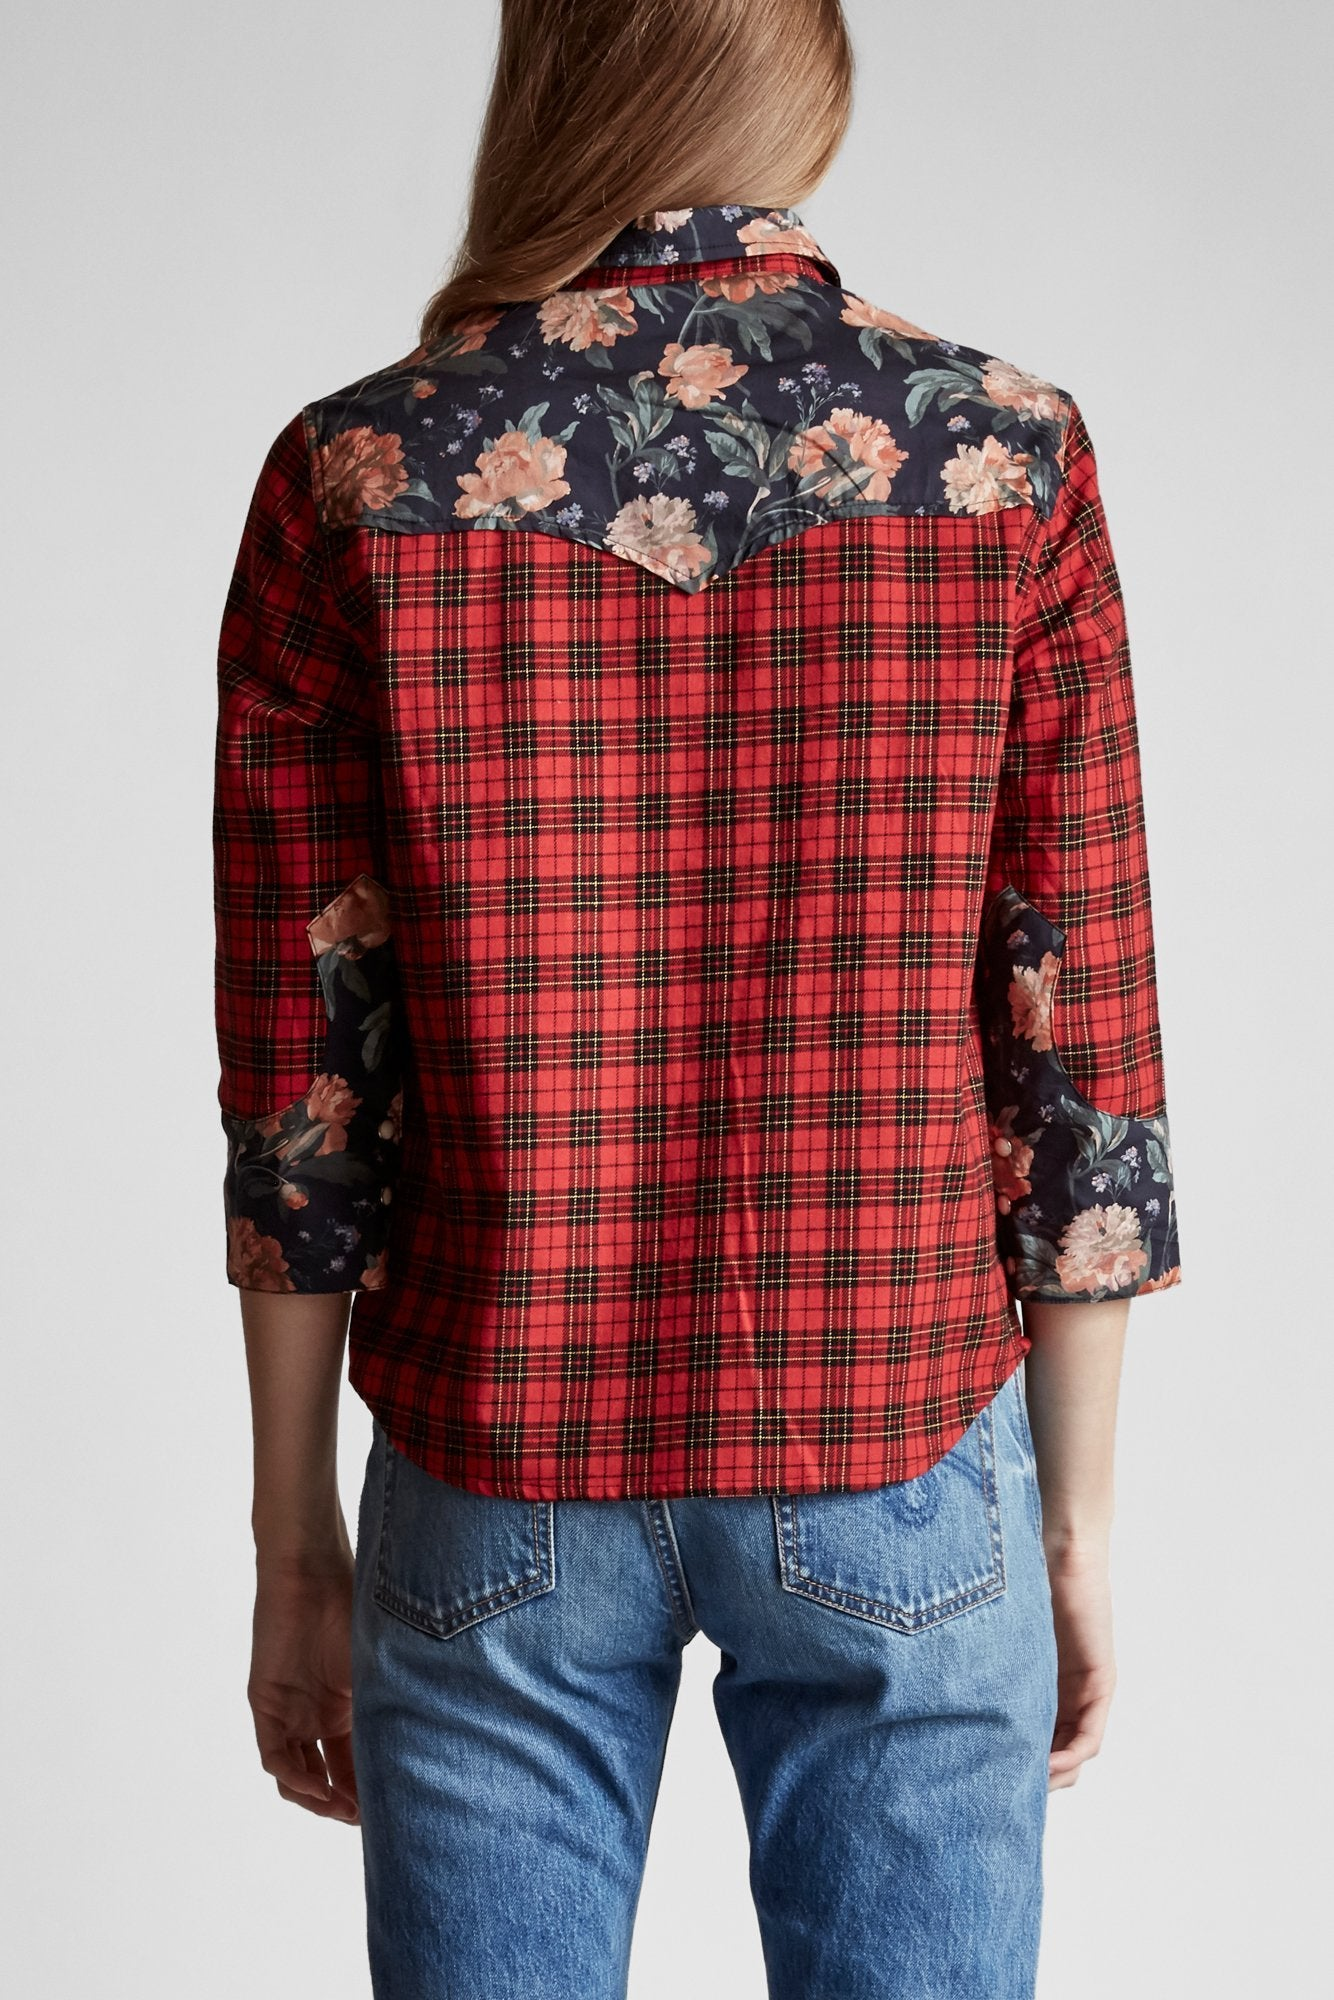 Exaggerated Collar Cowboy Shirt- Red Plaid with Black Floral